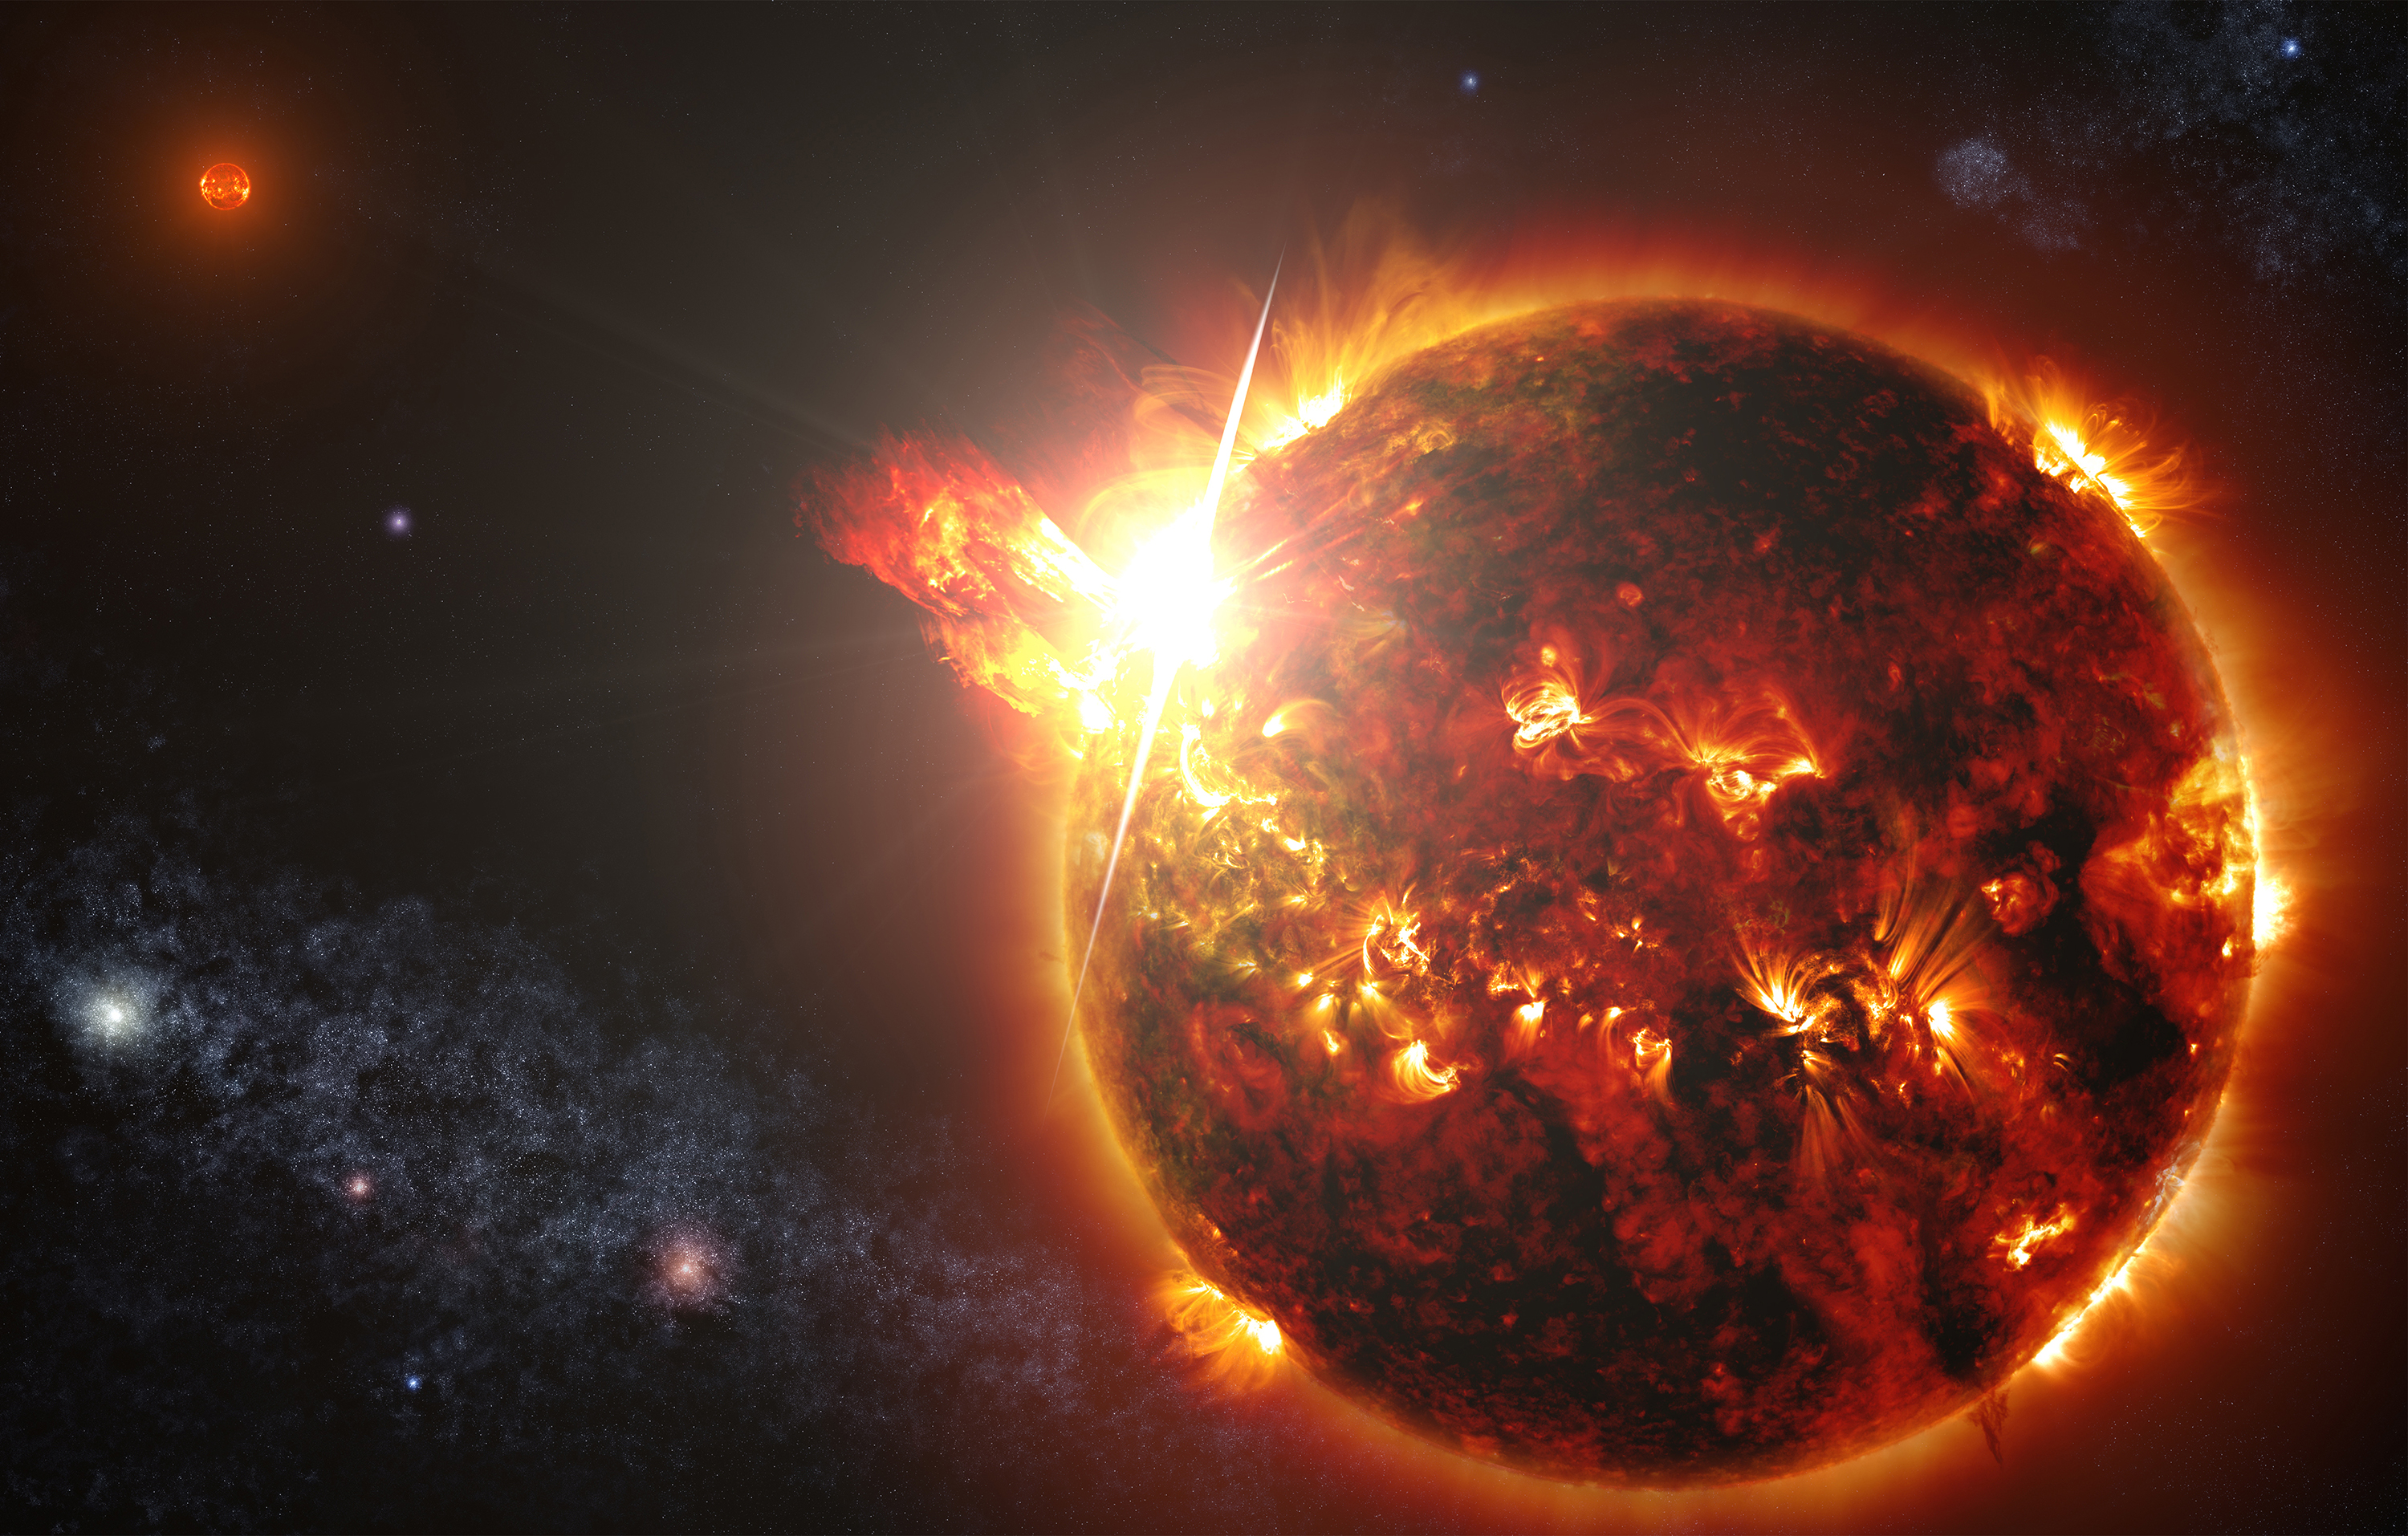 Chandra Detects a Coronal Mass Ejection From Another Star